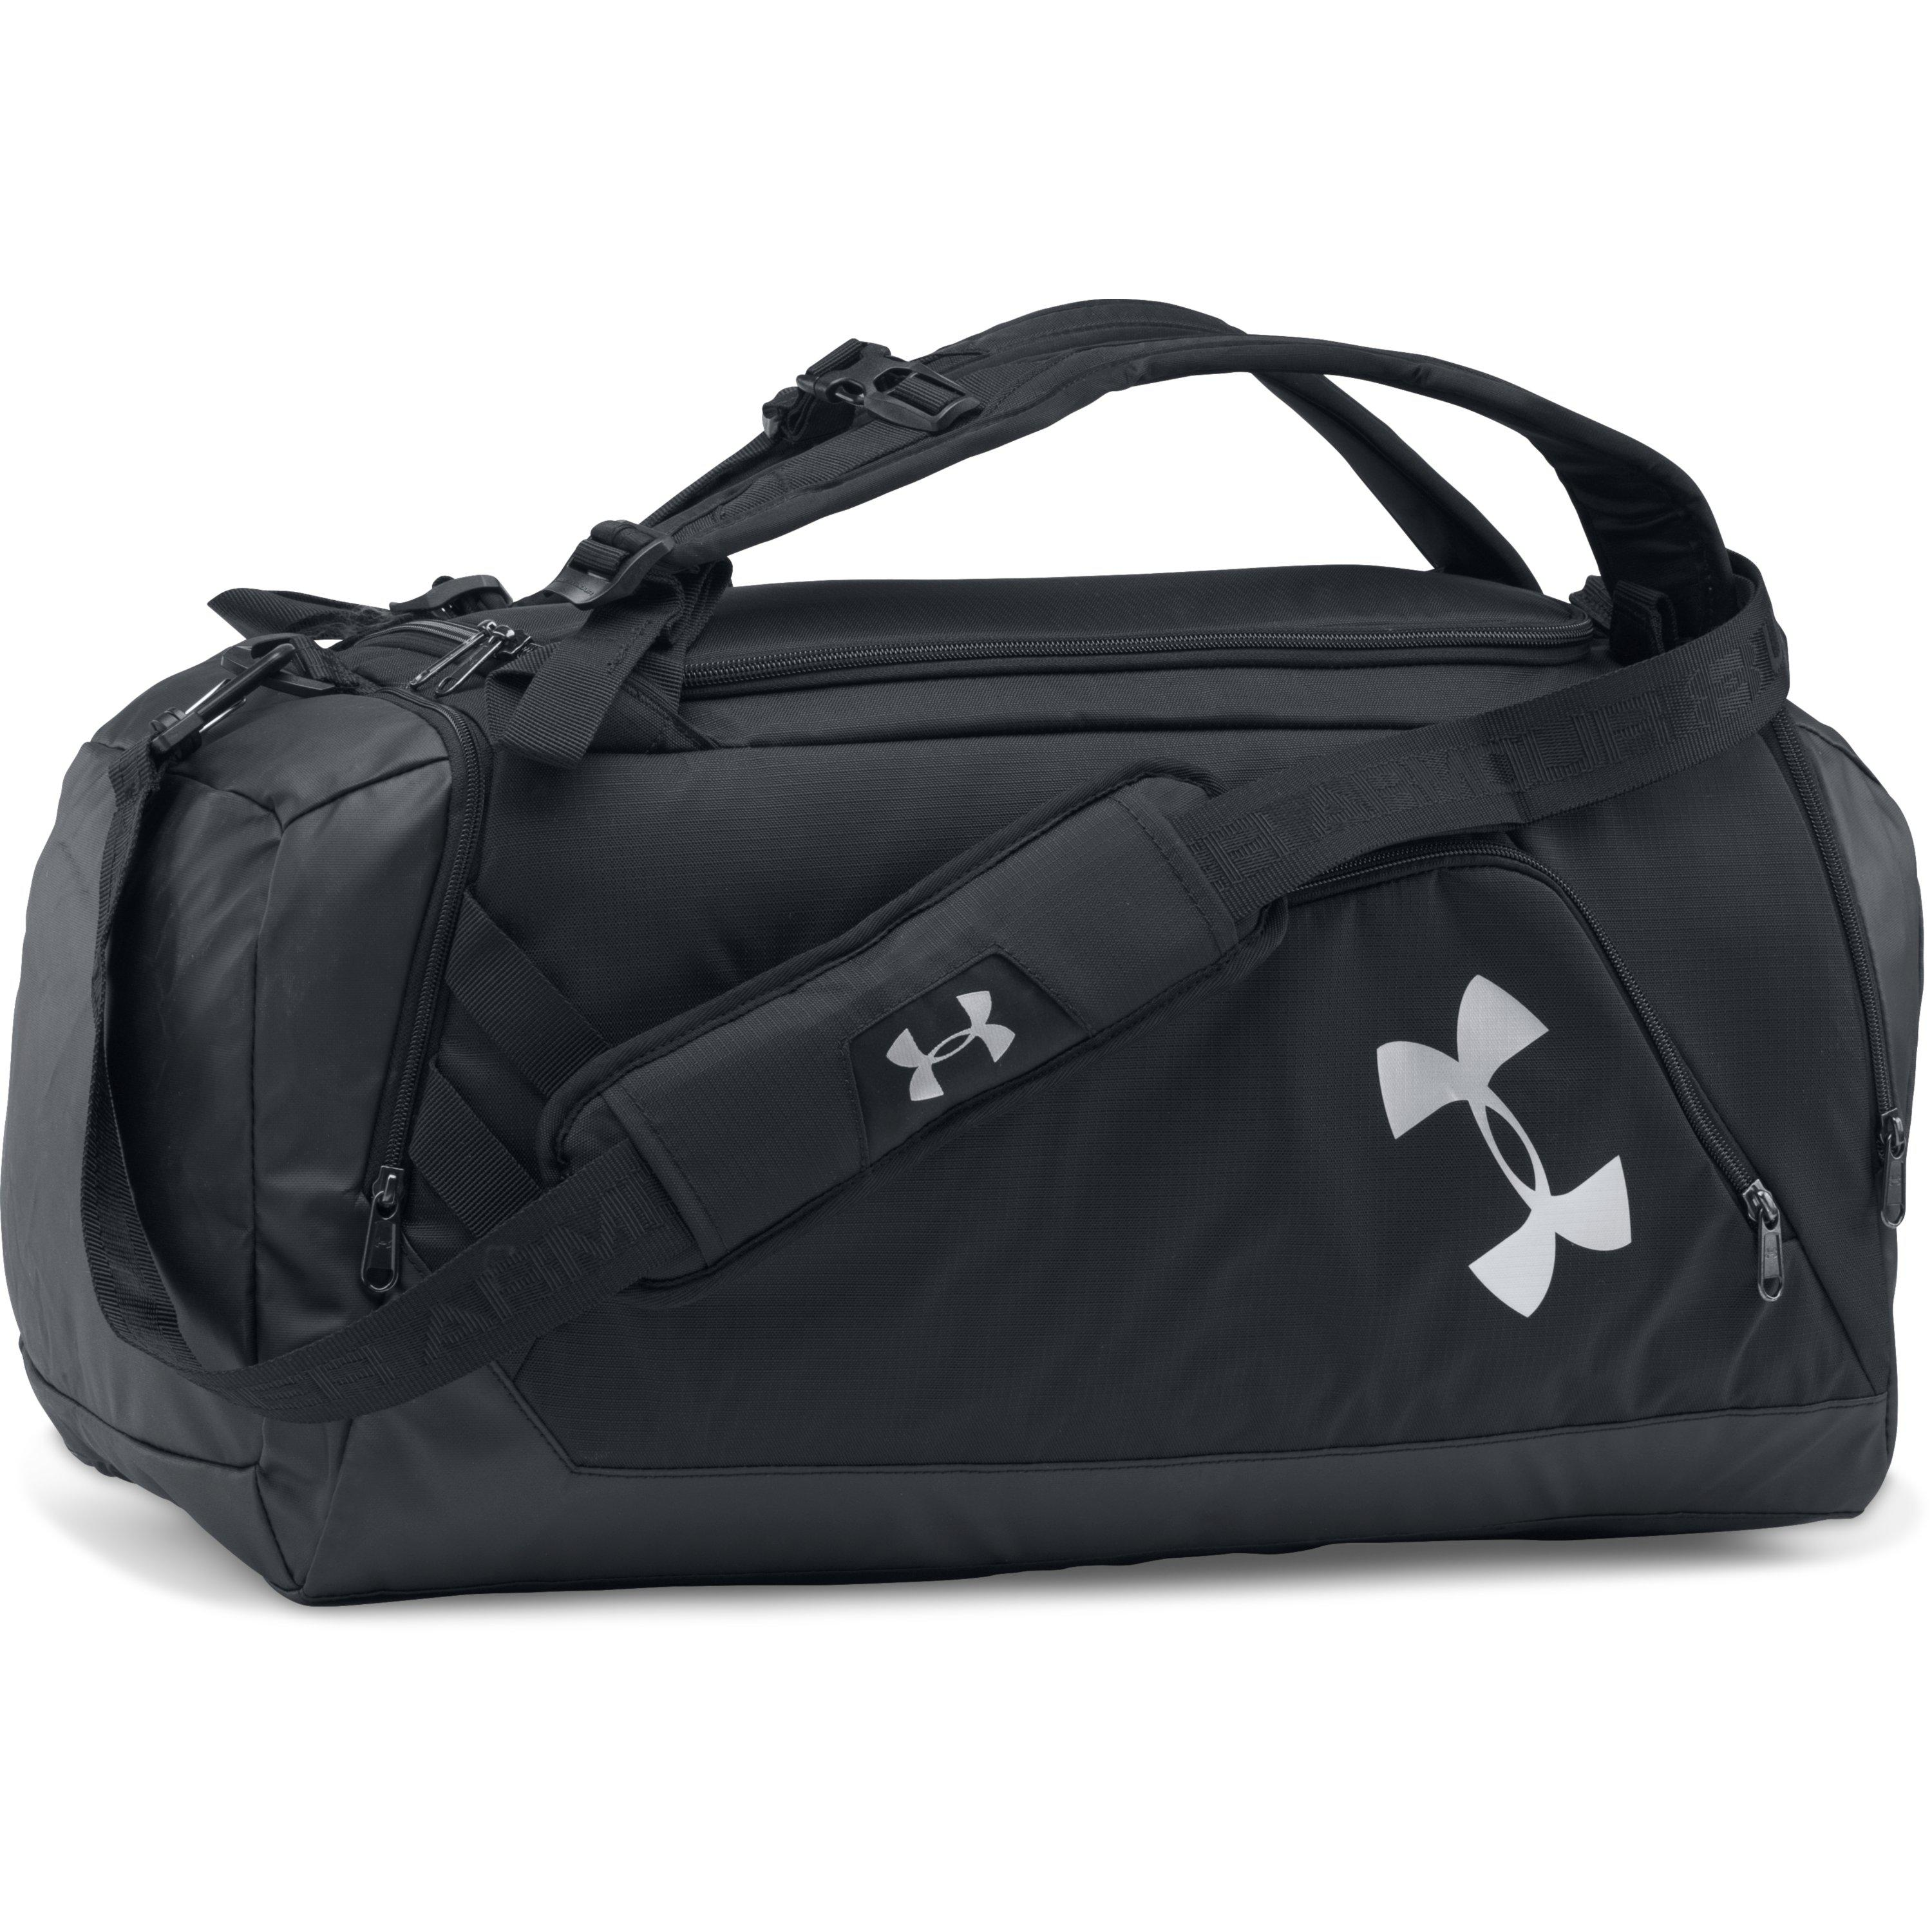 080e71a19d Lyst - Under Armour Ua Storm Contain Backpack Duffle 3.0 in Black ...